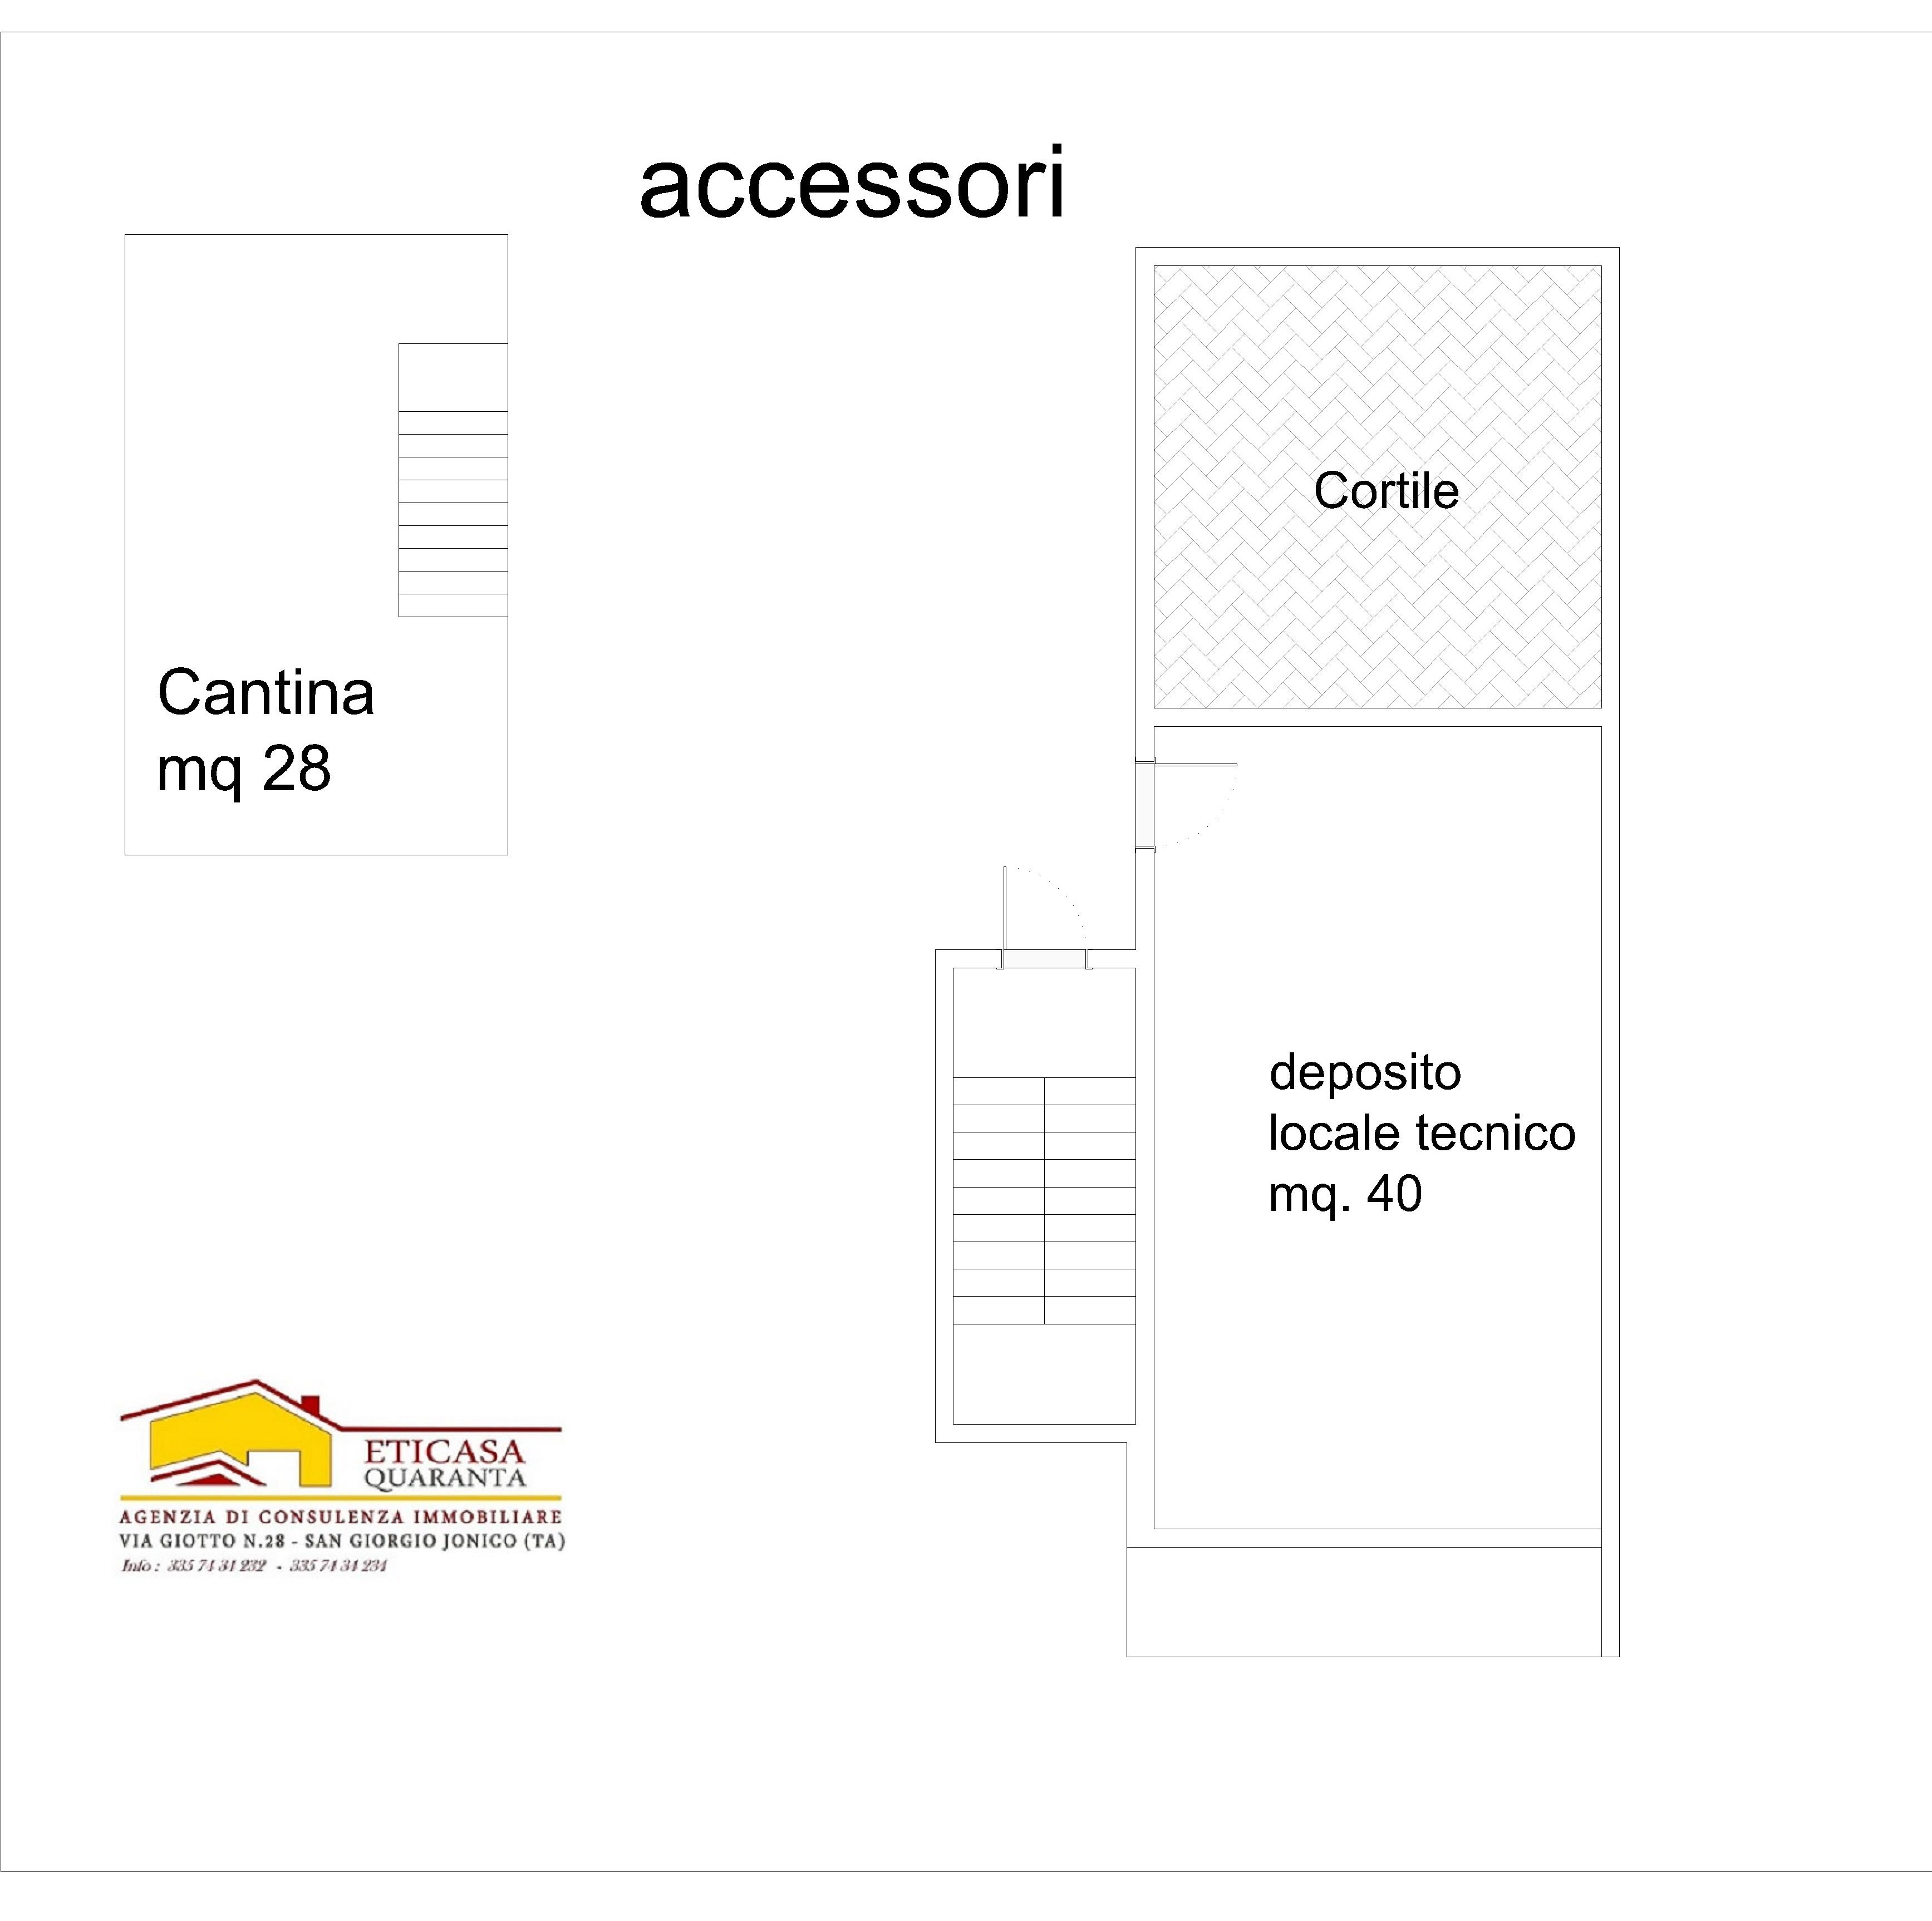 Accessori: cantina/deposito/cortile interno